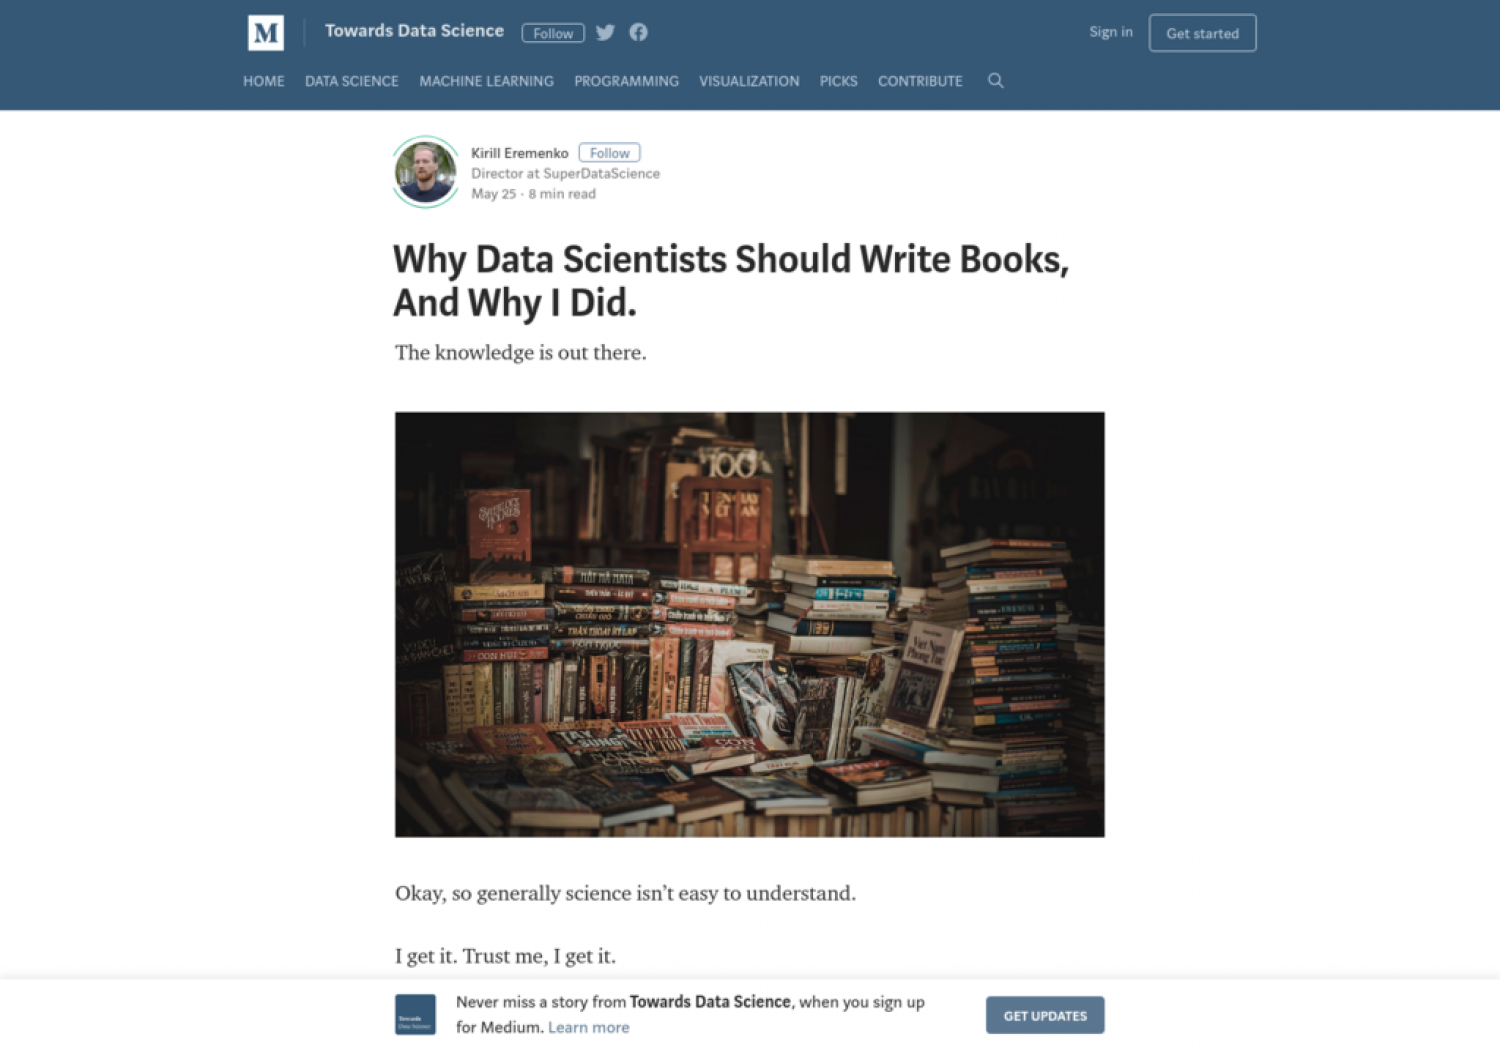 Why Data Scientists Should Write Books, And Why I Did. Infographic